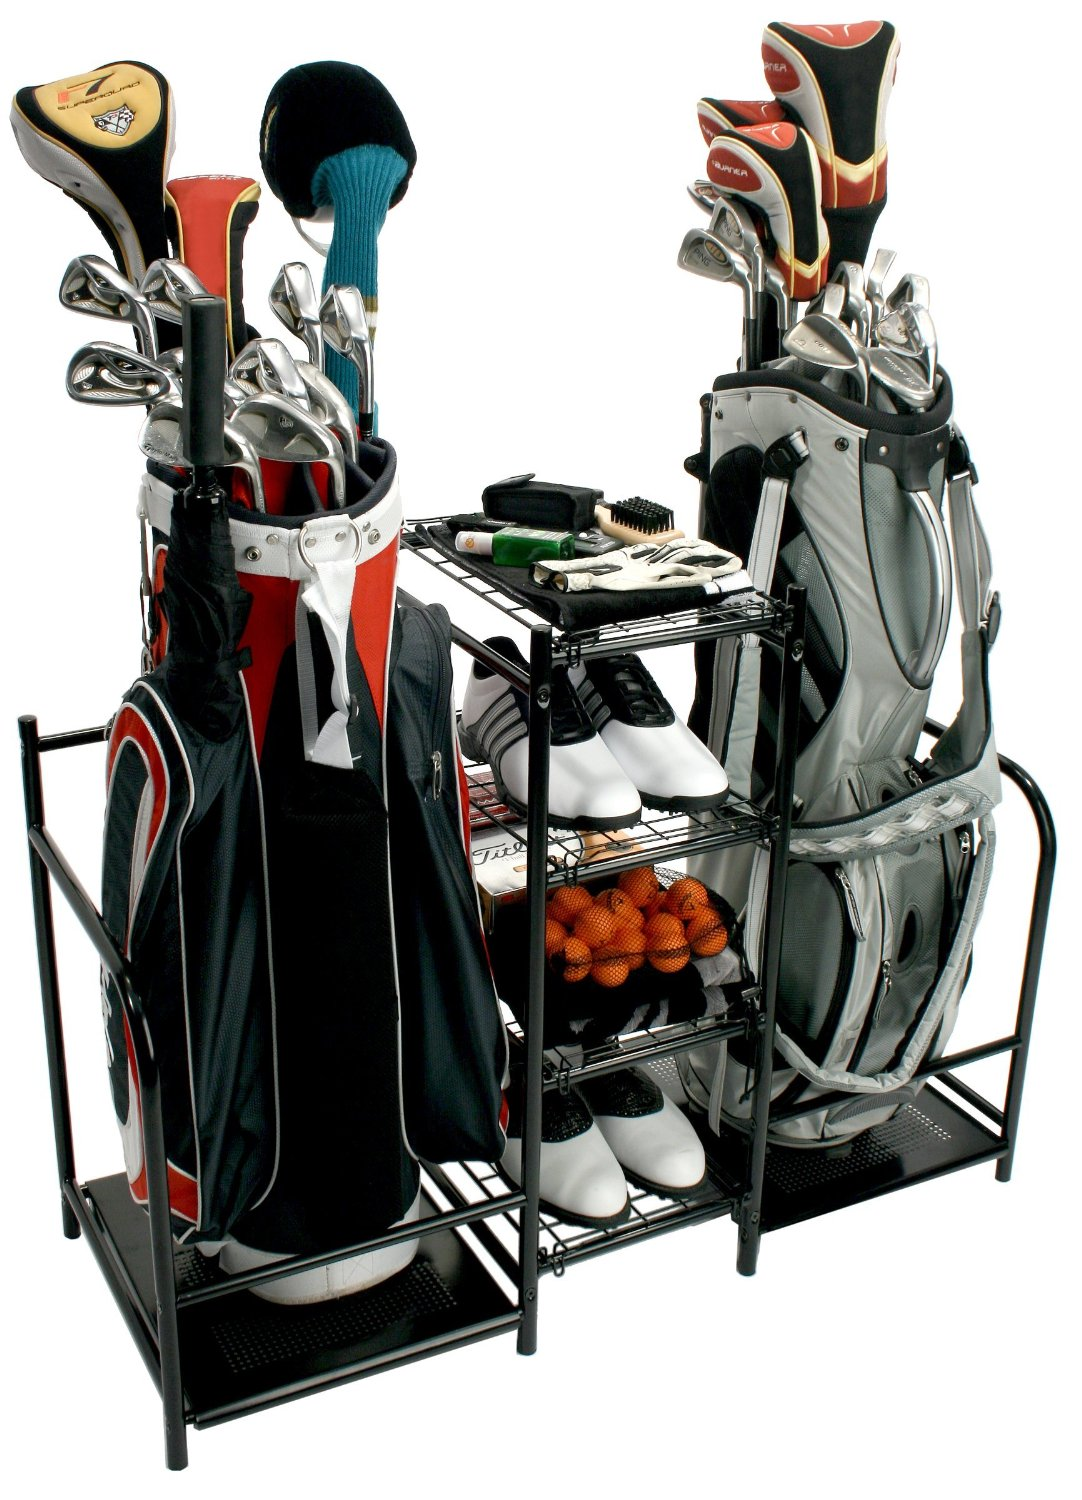 Bon ProActive Sports Dual Golf Bag, Gear And Equipment Storage Metal Organizers